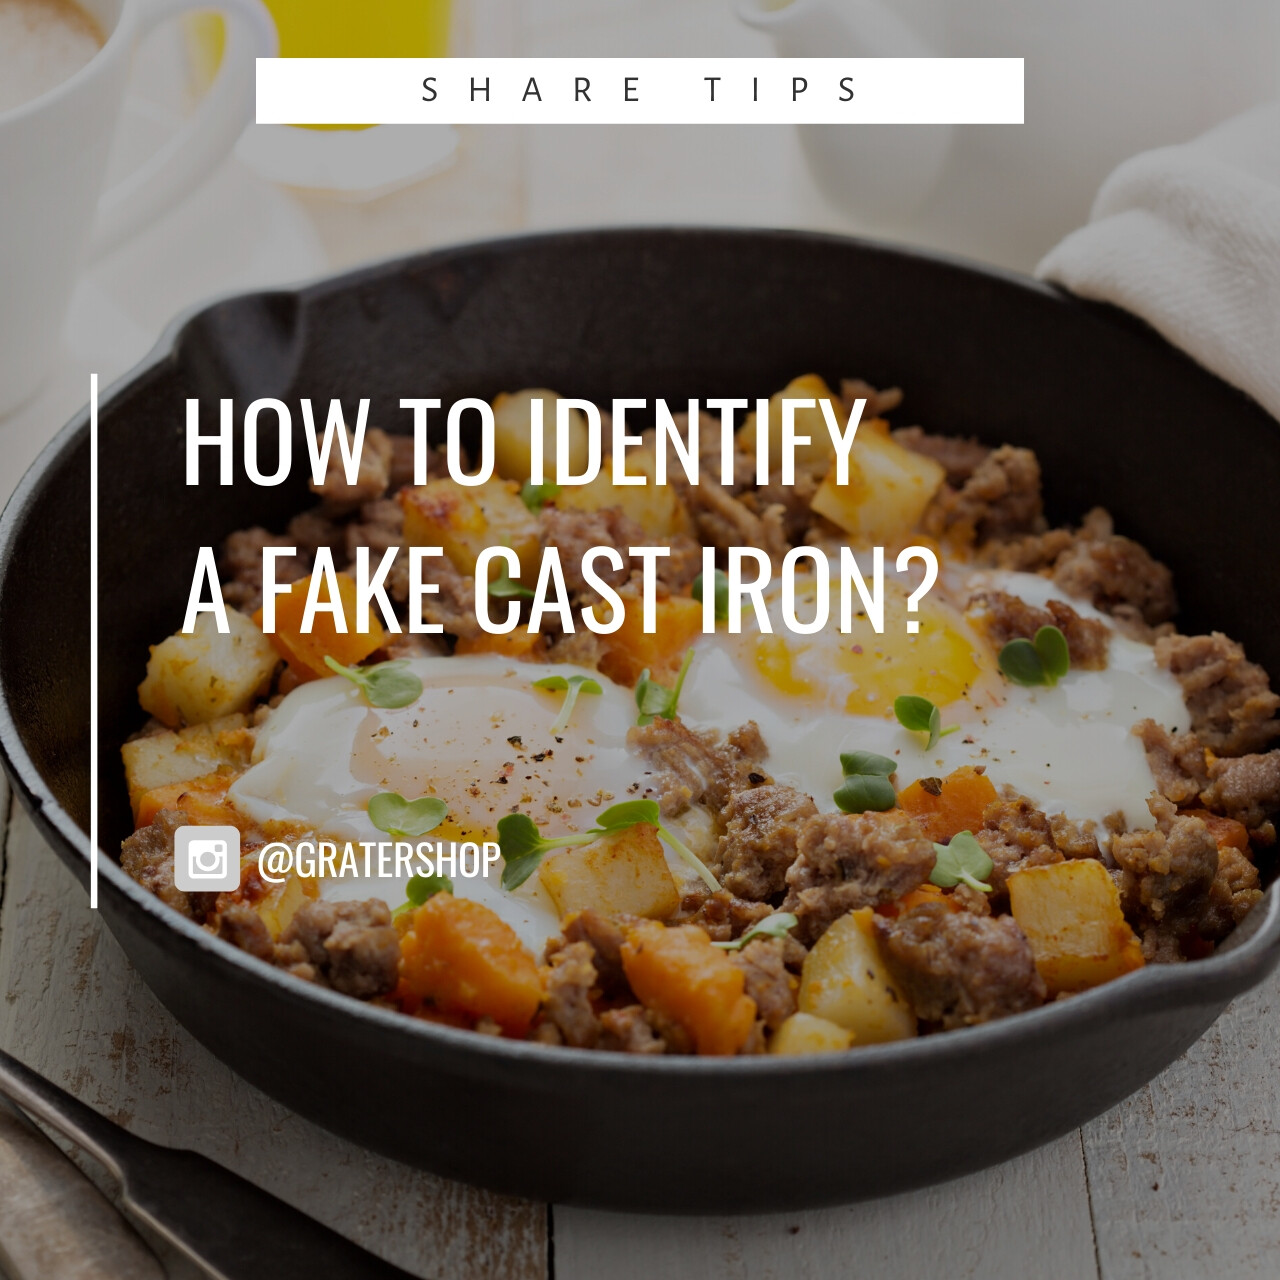 Blogs: How to Identify a Fake Cast Iron? [NOT FOR SALE]